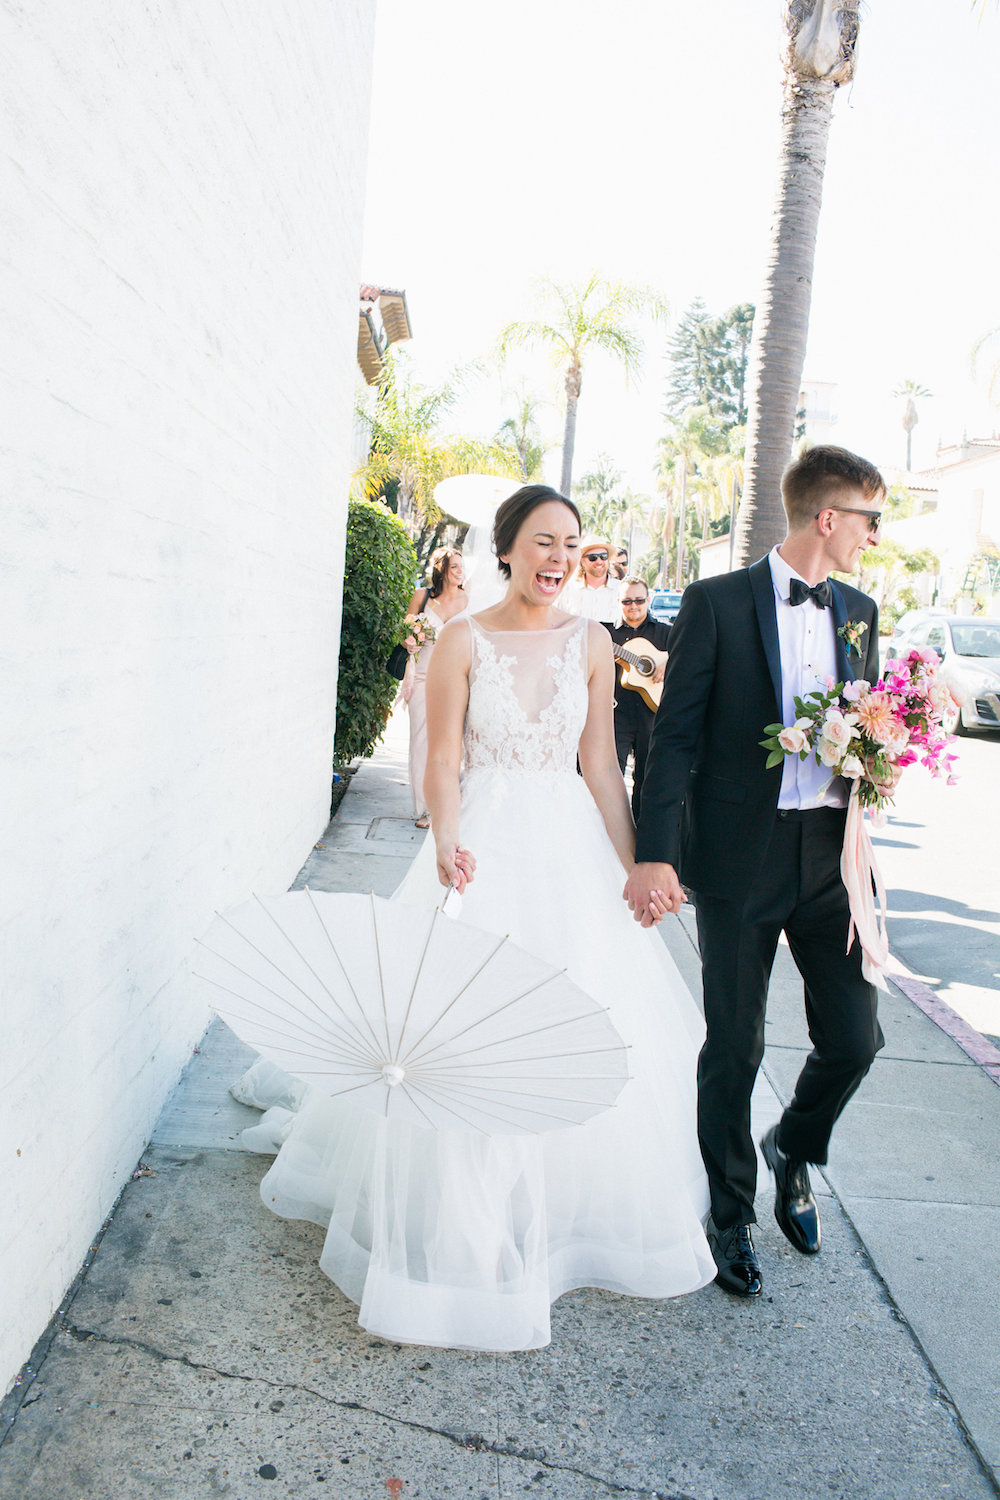 Melanie & Dylan paraded through the streets of Santa Barbara after their wedding ceremony.  Photo by Max & Friends.  Event Design by Carly Rae Weddings.